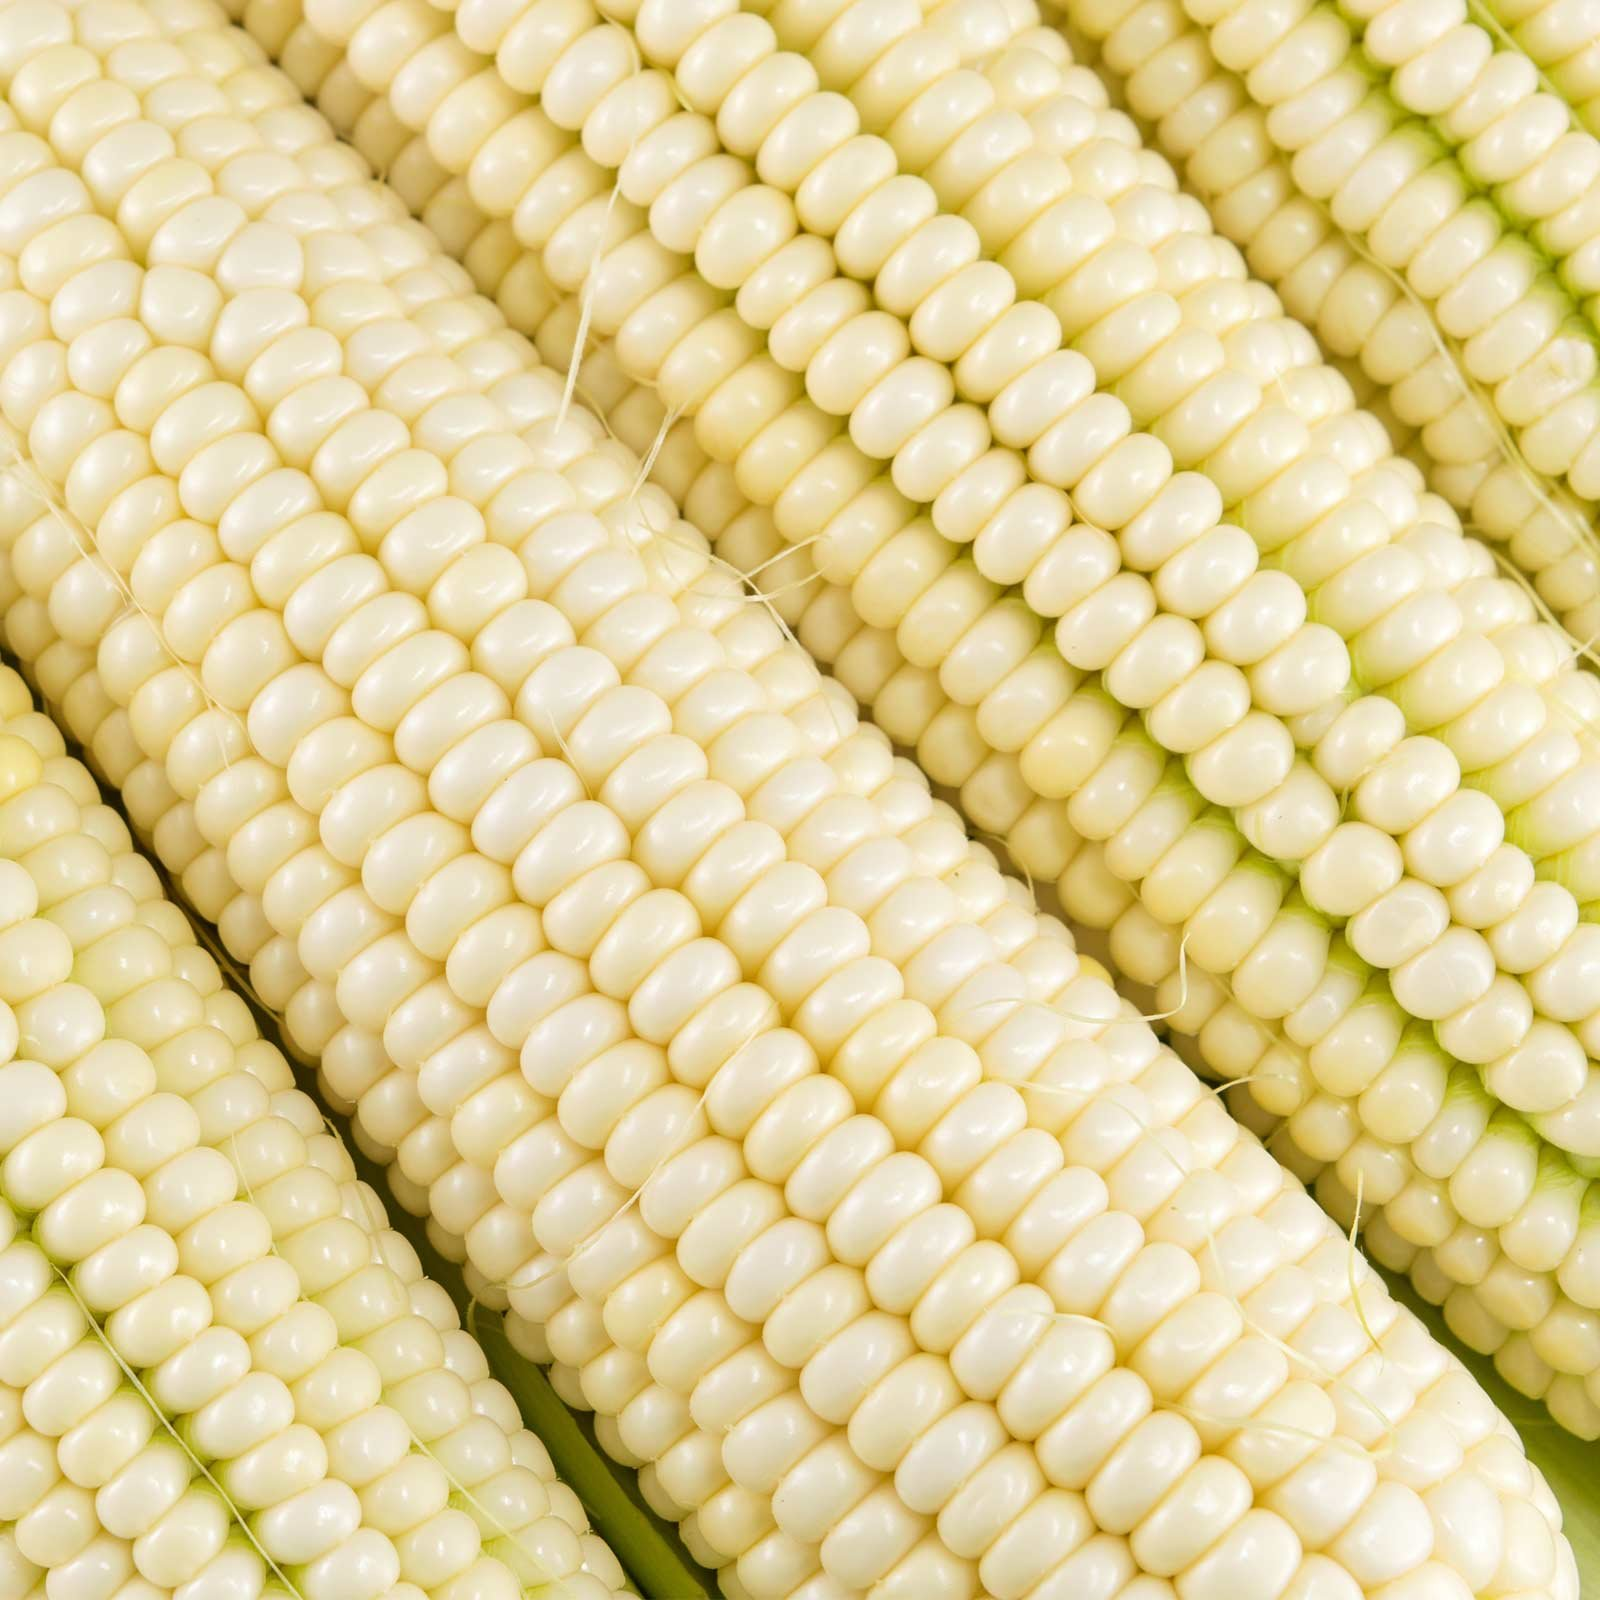 Silver King Hybrid Corn Garden Seeds - 5 Lb - Non-GMO Vegetable Gardening Seeds - White Sweet Corn (SE) by Mountain Valley Seed Company (Image #1)